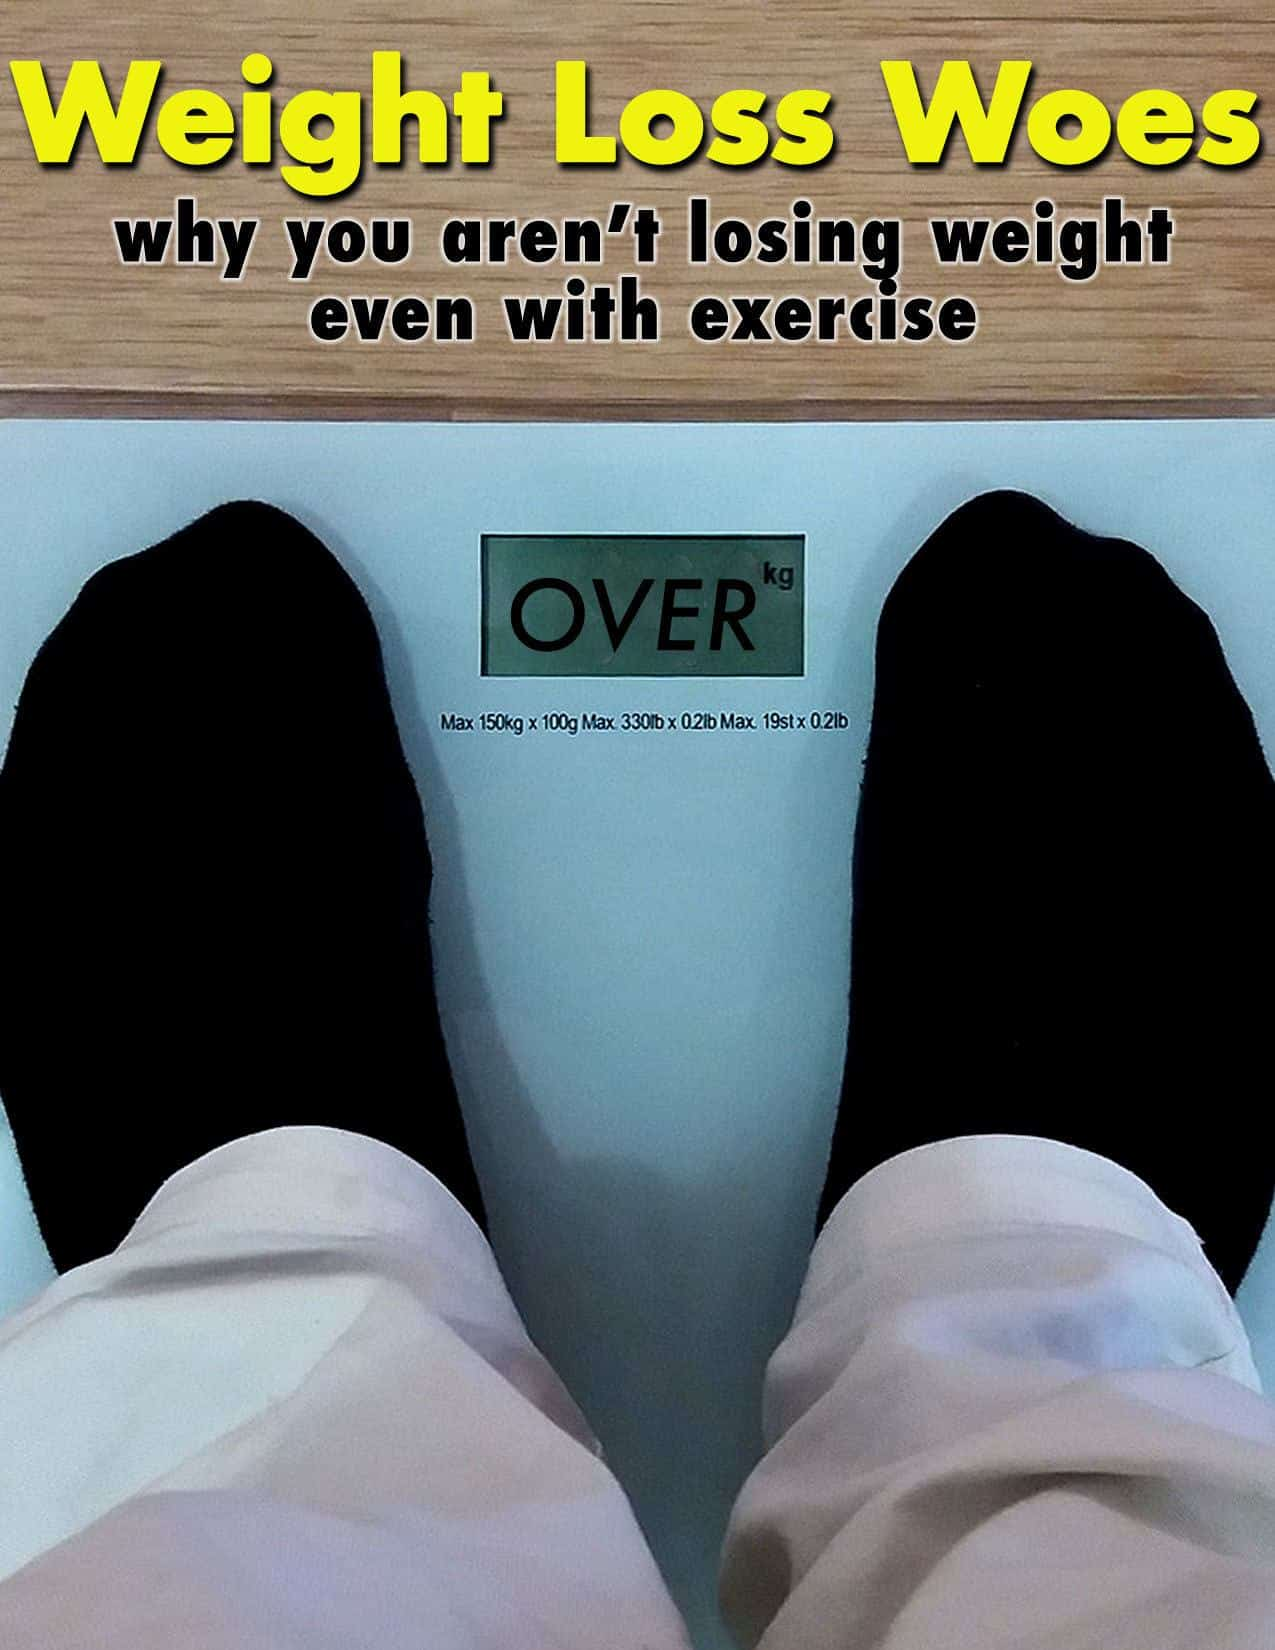 weight-loss-woes